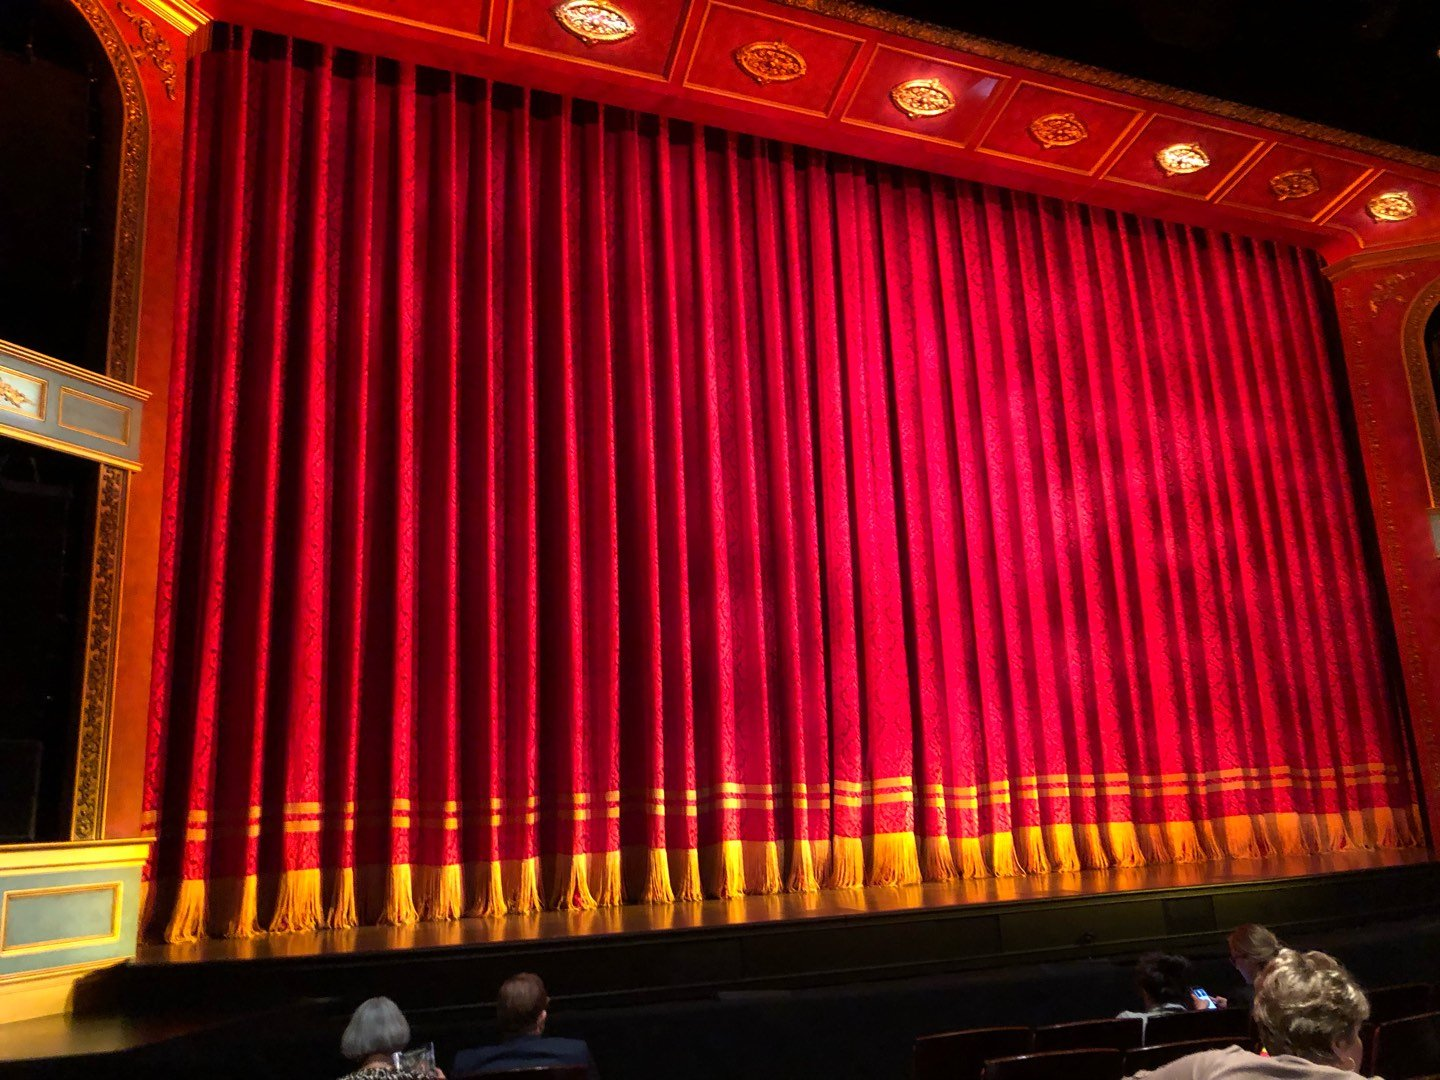 Marquis Theatre Section Orchestra R Row G Seat 11